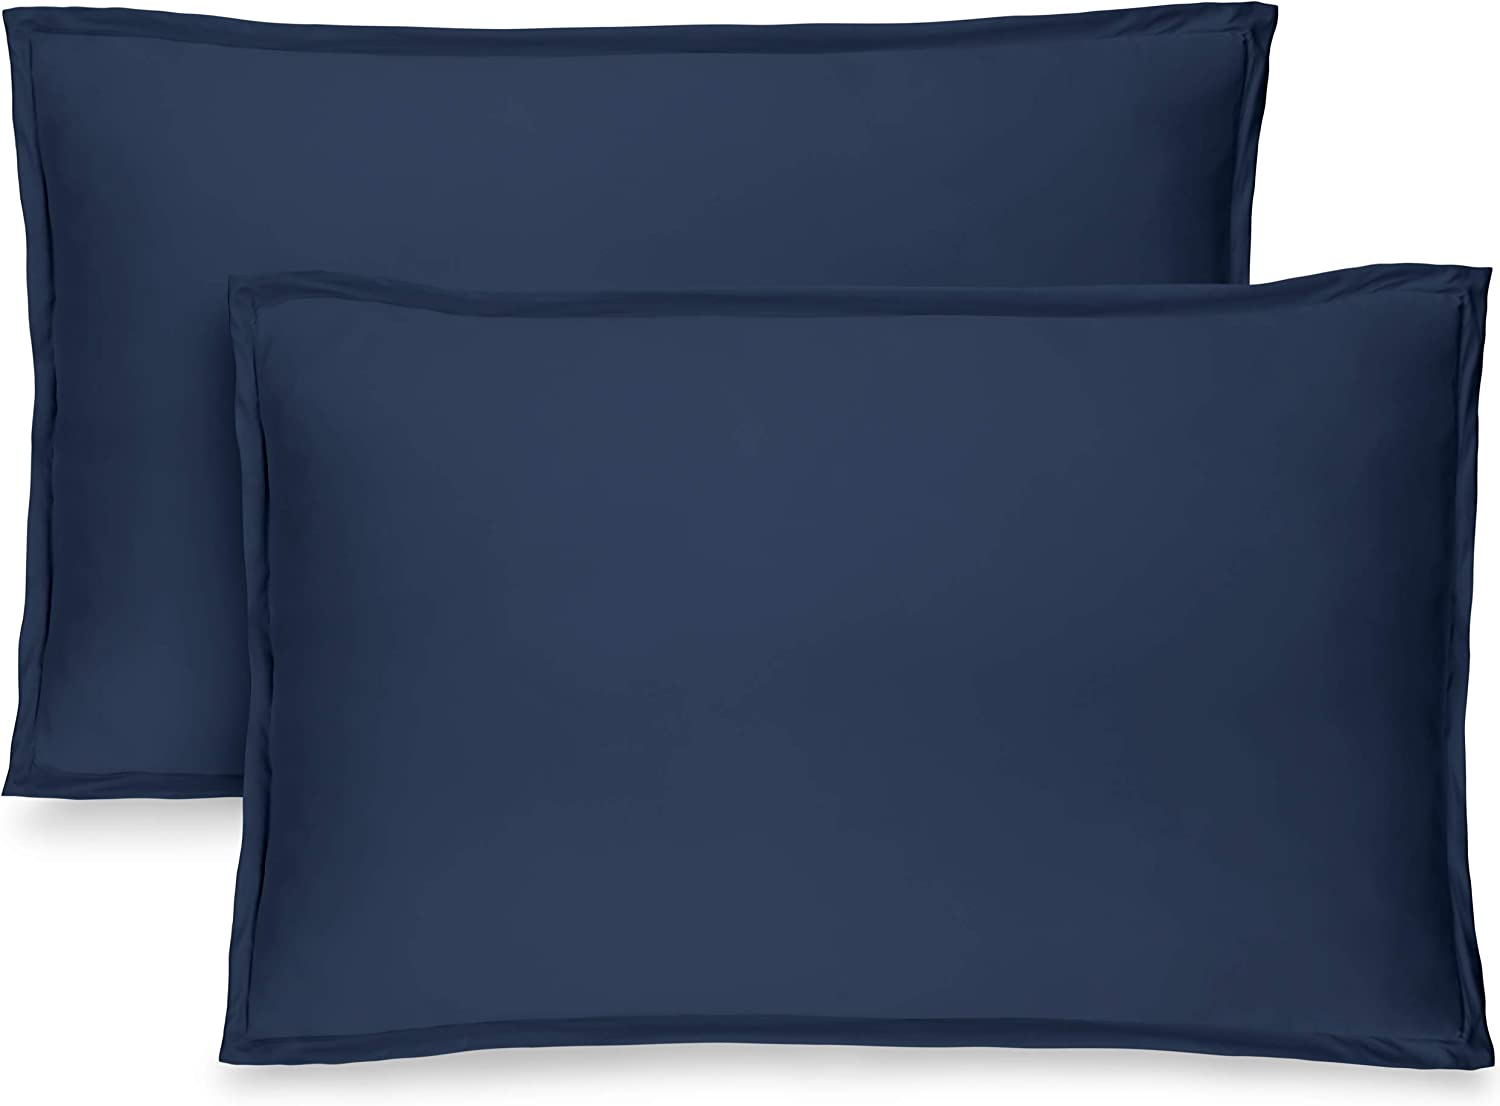 Bare Home Premium 1800 Ultra-Soft Microfiber Pillow Sham - Double Brushed - Hypoallergenic - Wrinkle Resistant (Standard Pillow Sham Set of 2, Dark Blue)